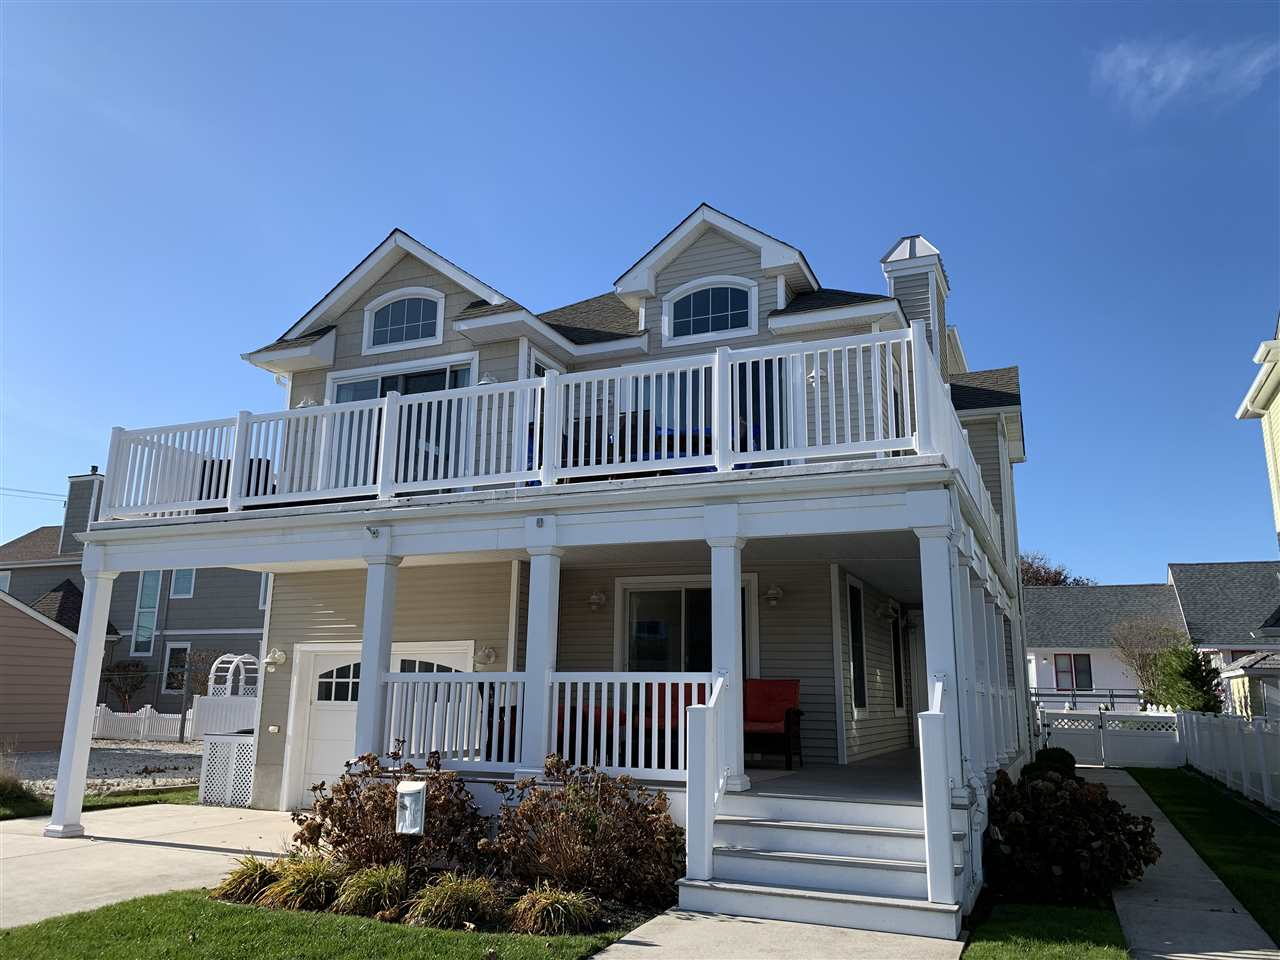 2402 Avalon, Avalon, NJ 08202-2055